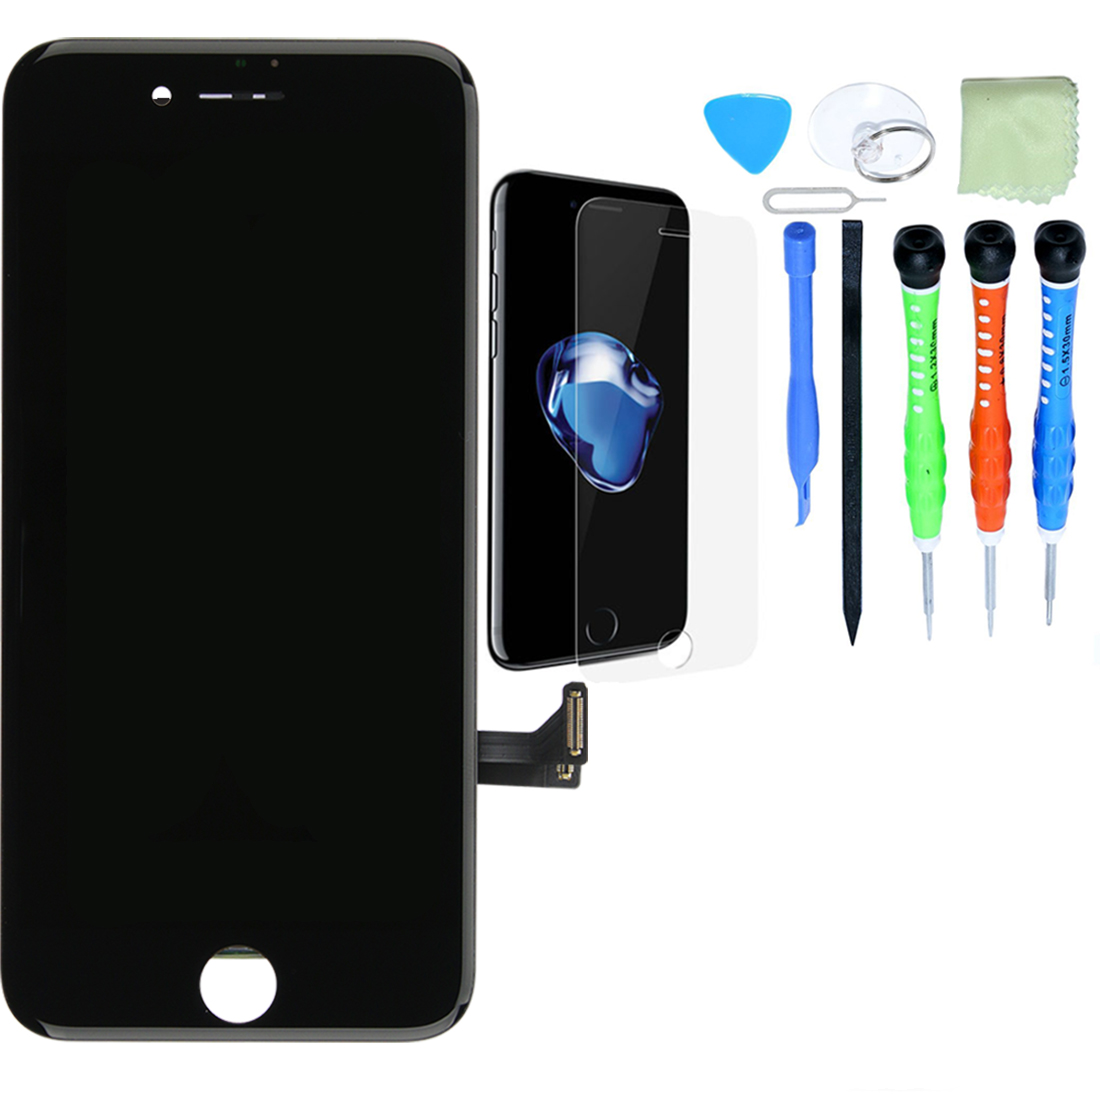 iPhone LCD Screen and Digitizer Repair Kits - iPhone SE - Black